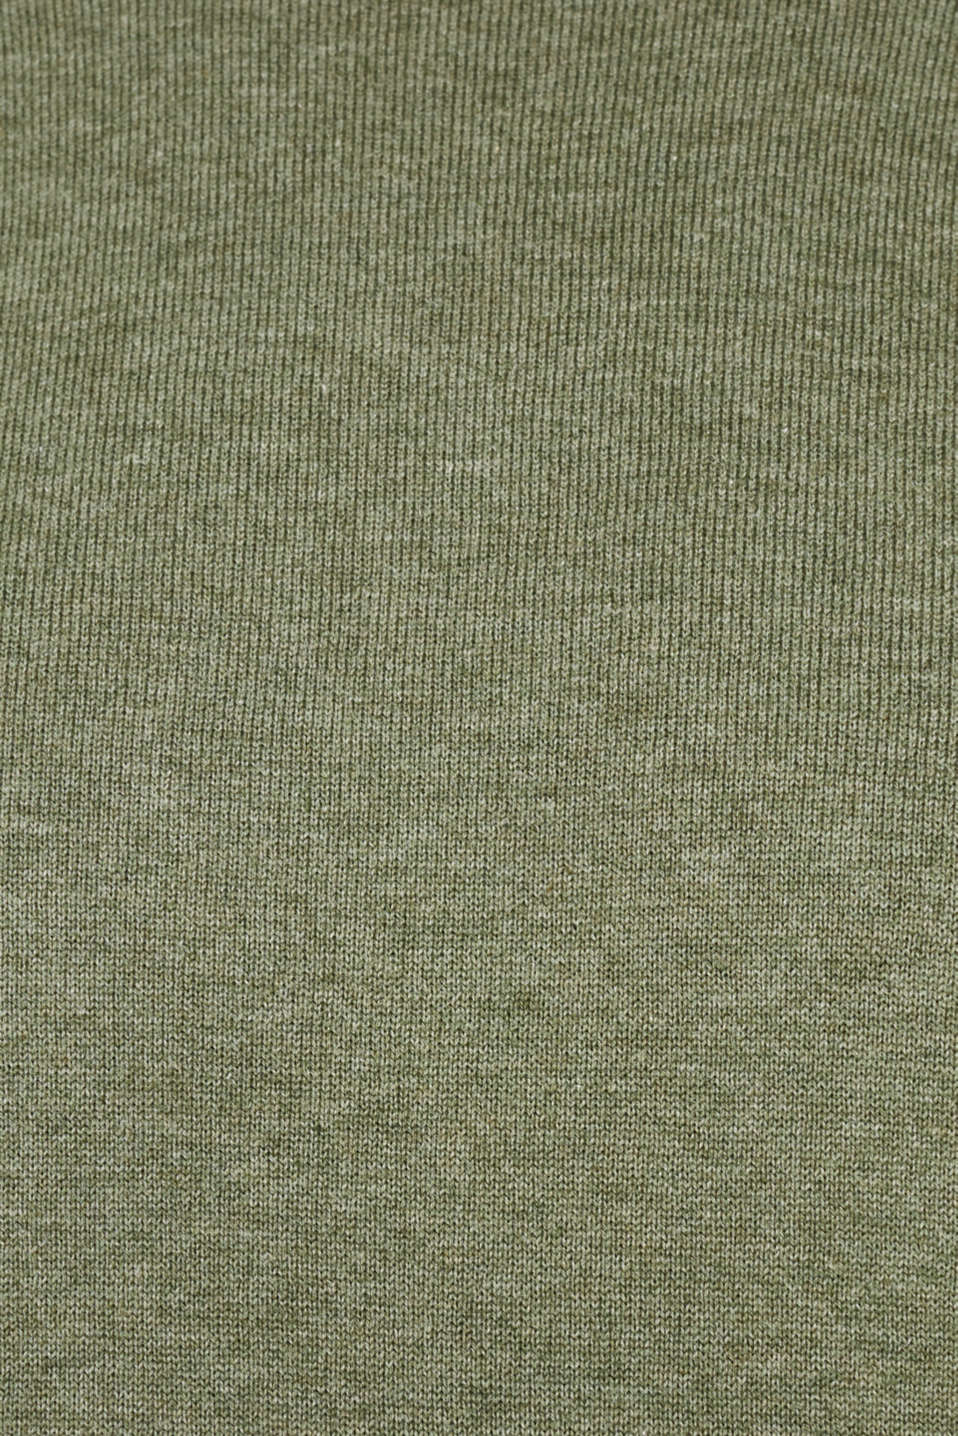 Sweaters, LIGHT KHAKI 5, detail image number 3